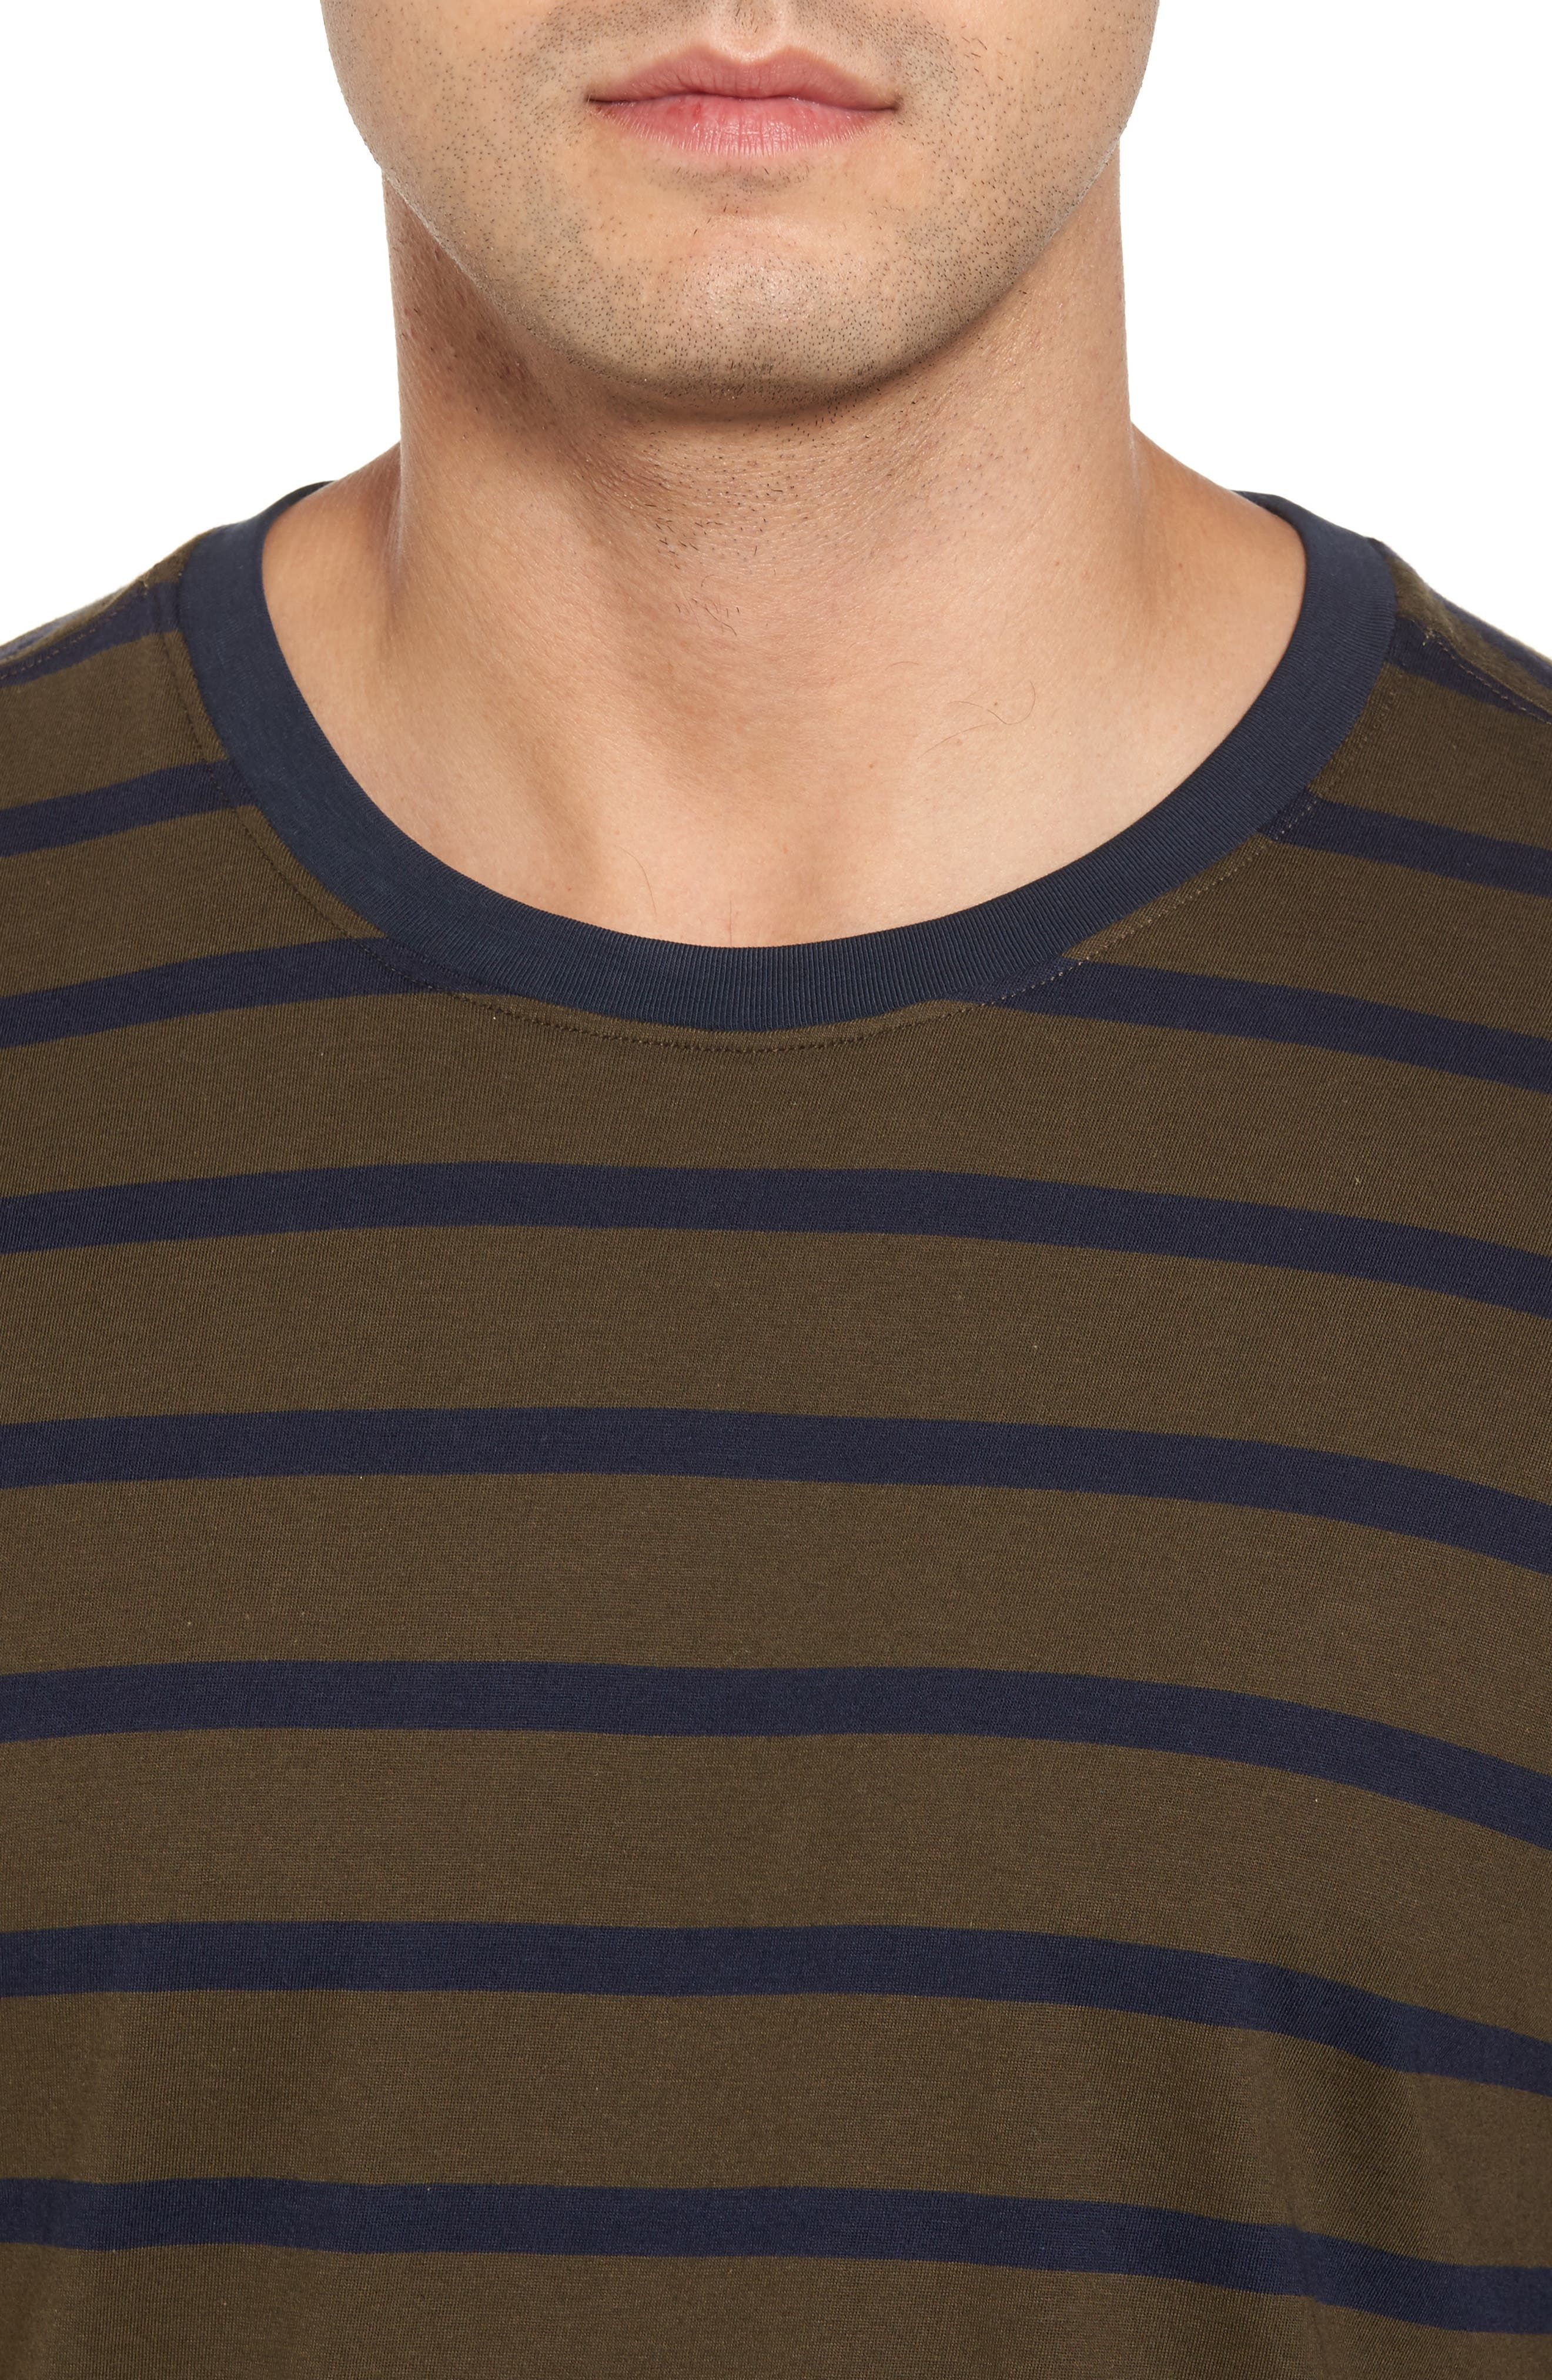 Peruvian Pima Cotton Stripe T-Shirt,                             Alternate thumbnail 4, color,                             Army/ Midnight Stripe